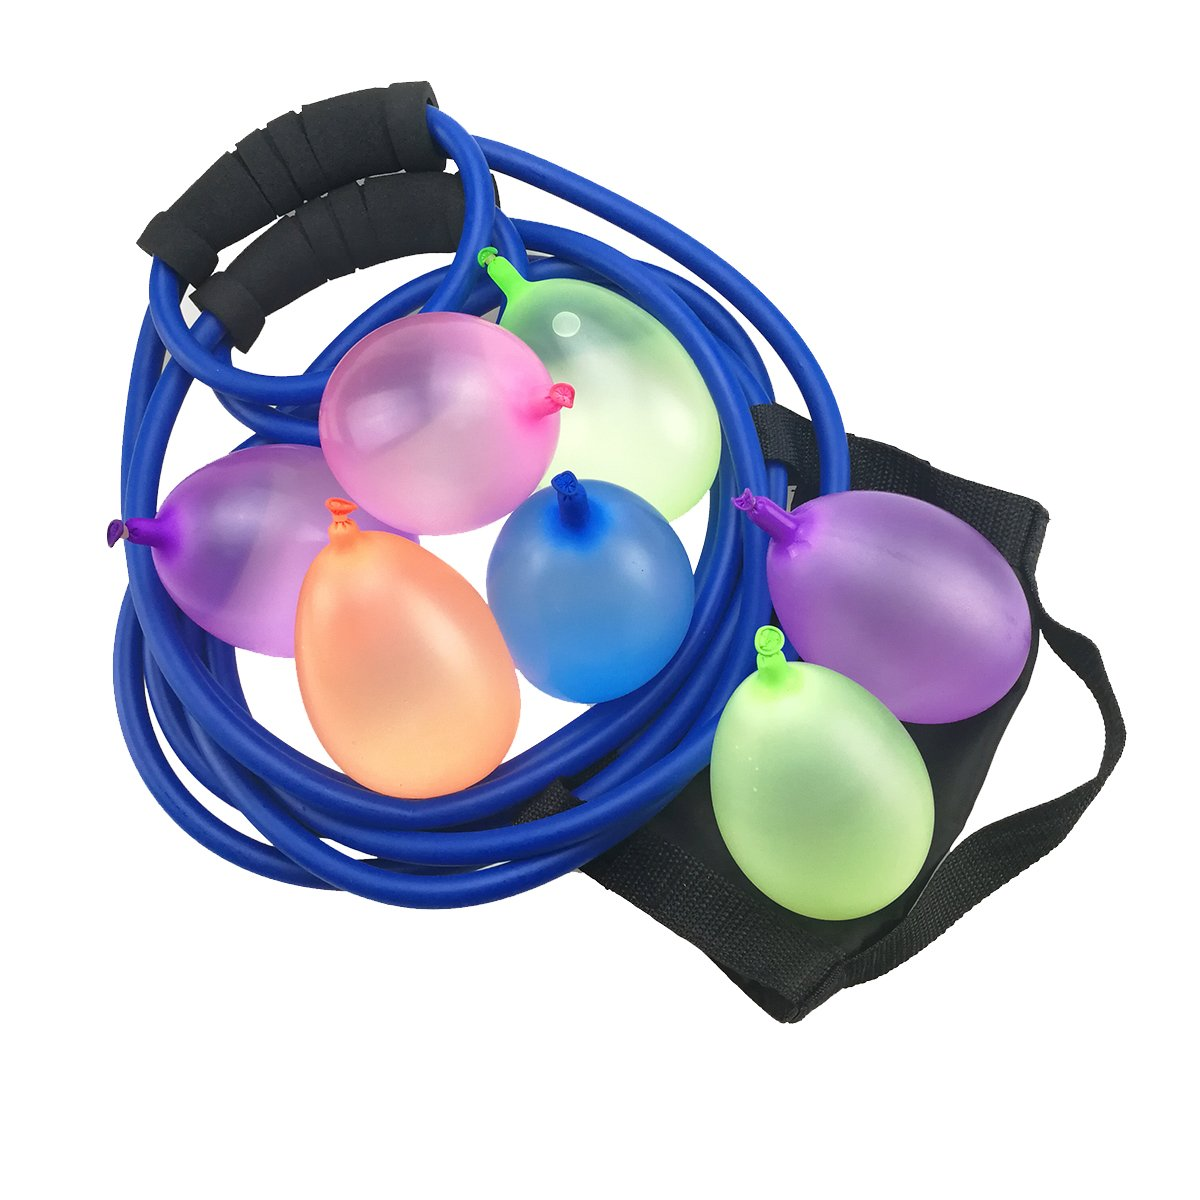 TiMi Tree Water Balloon Launcher 500 Yards, Heavy Duty Water Balloon Cannon / Slingshot Fun Water Balloon Fight Pool Party Toy,3 Person Giant Angry Birds Summer Beach Games,500 Balloons & Carry Case